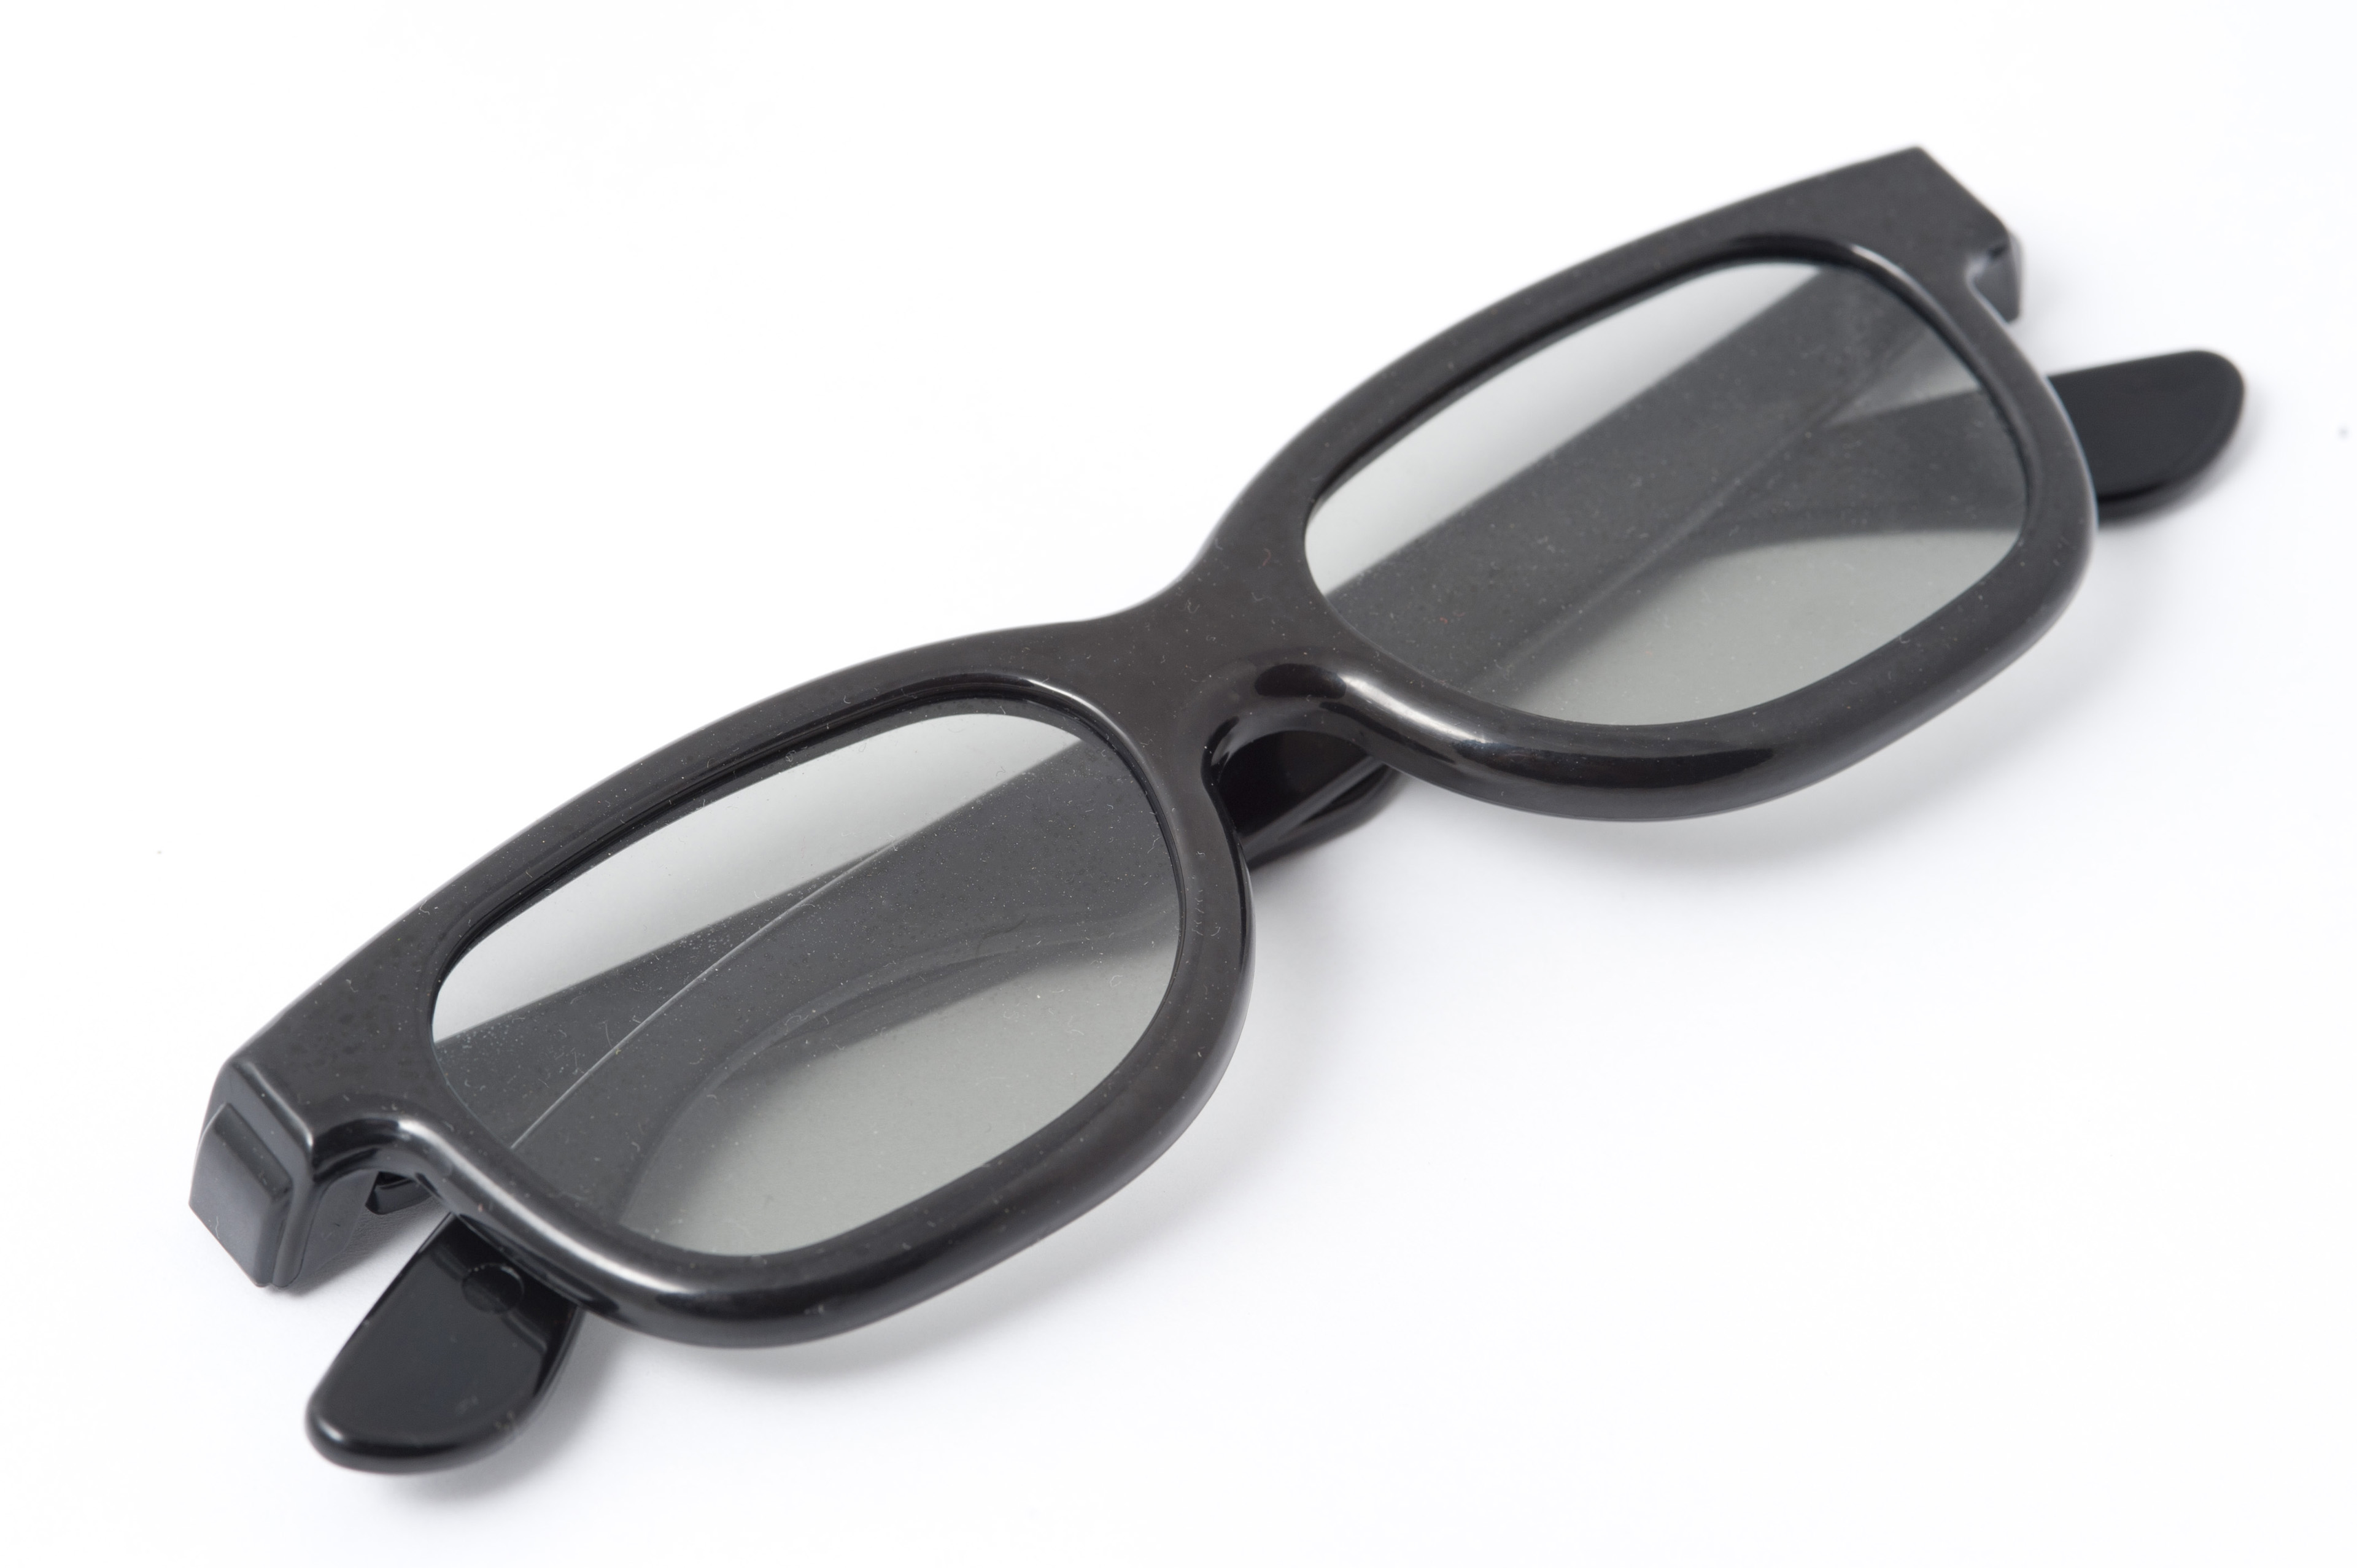 A pair of polarizing 3D movie spectacles on a white background